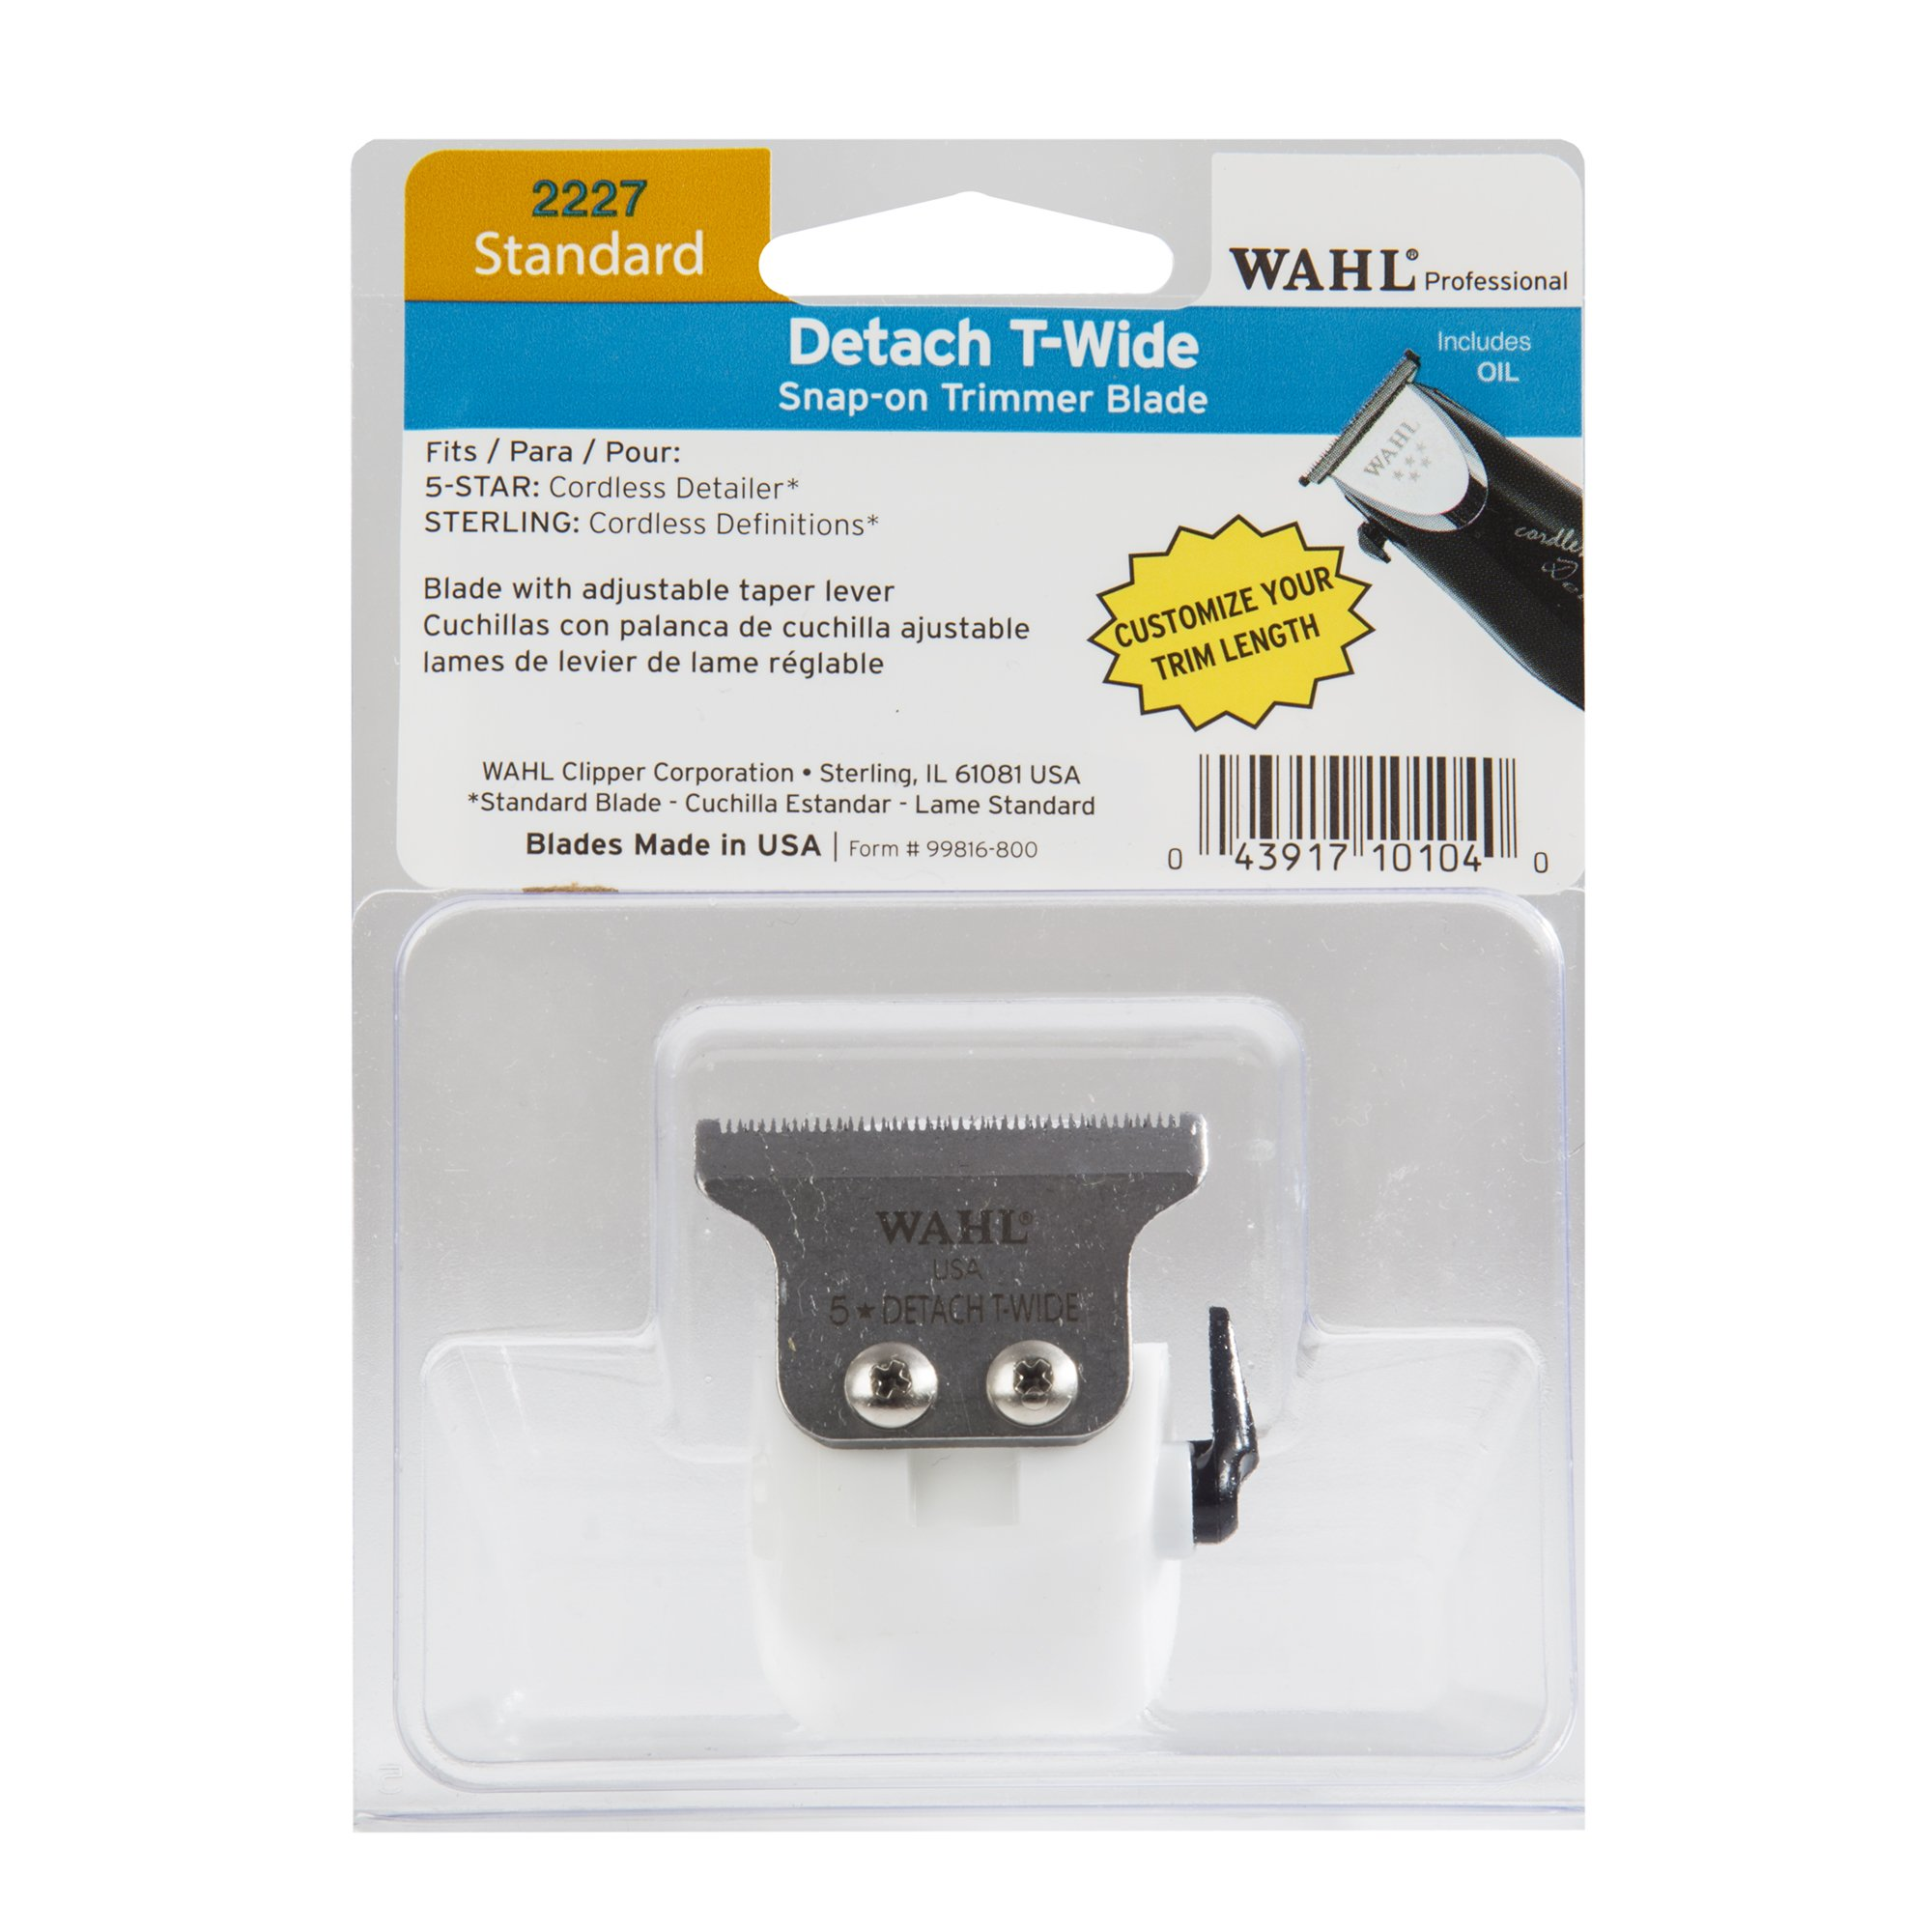 Wahl Professional Standard Detach T Wide Snap On Trimmer Blade #2227 – For the 5 Star Cordless Detailer and the Sterling Cordless Definitions – Includes Oil